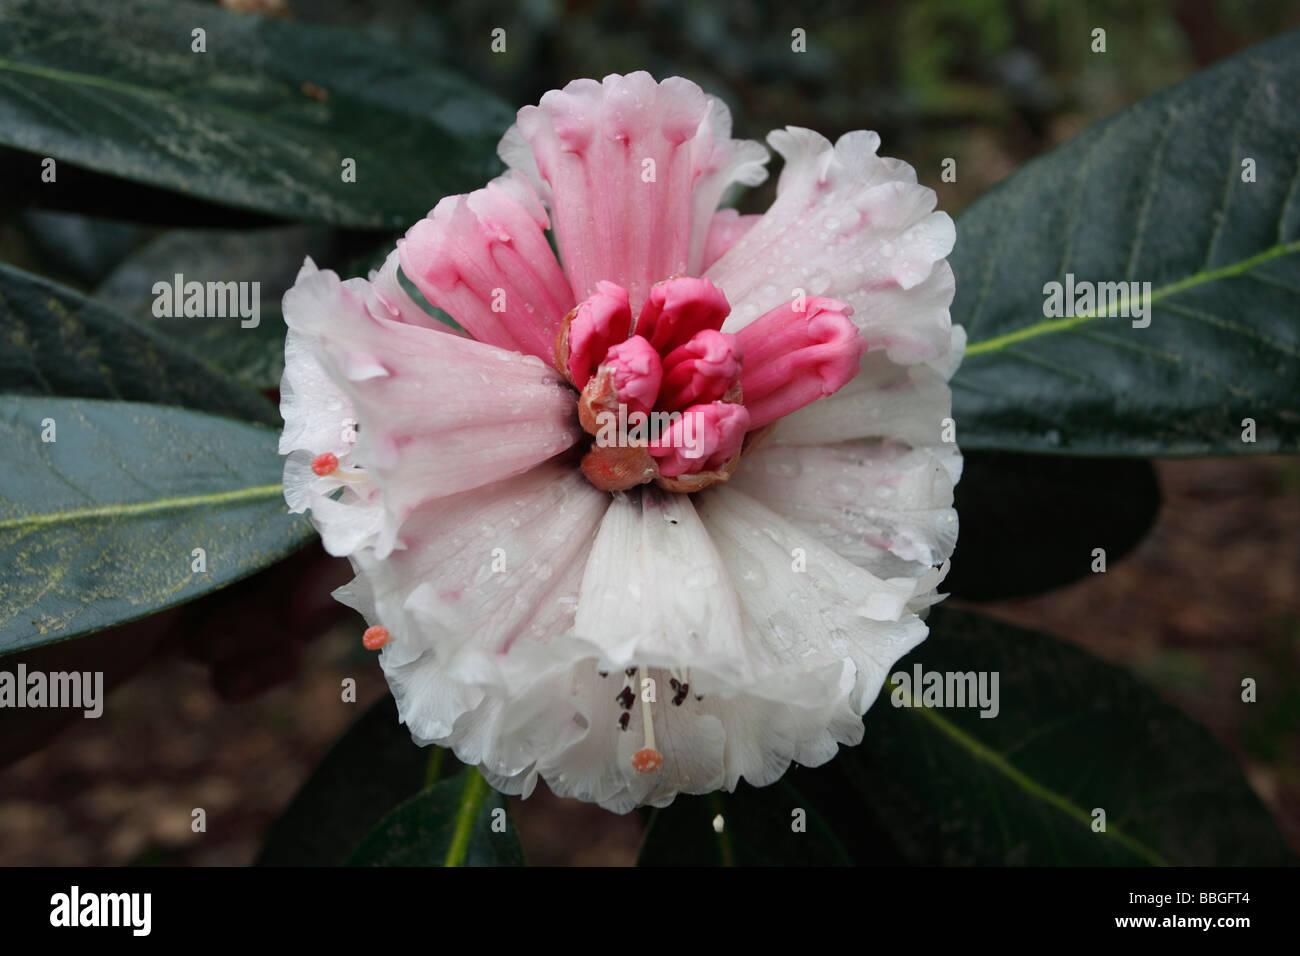 RHODODENDRON MACABEANUM CLOSE UP OF OPENING FLOWER - Stock Image